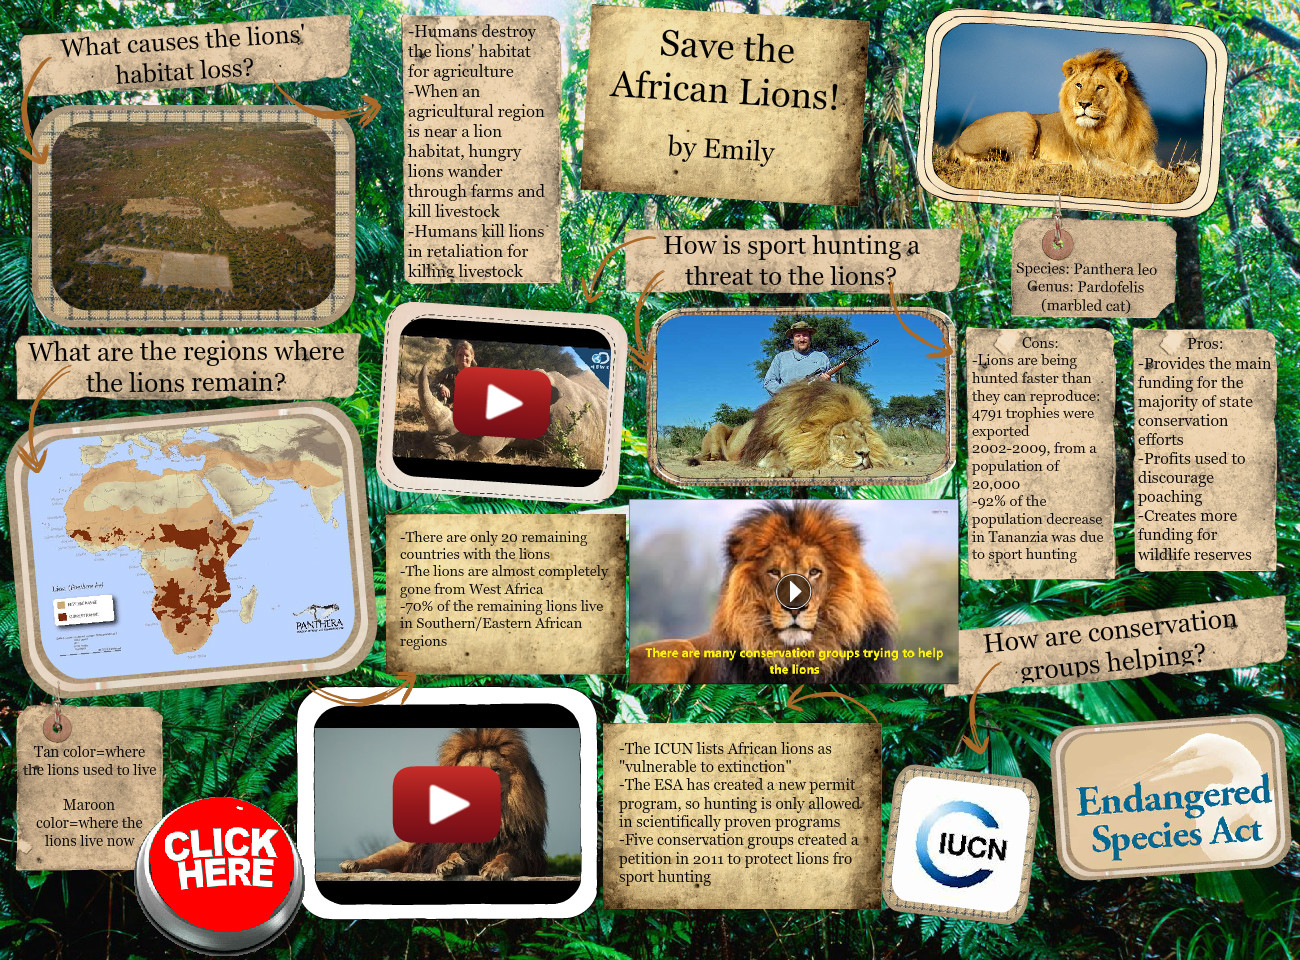 [2015] Kate+Emily R (3rd Earth Science 2015): Save the African Lions